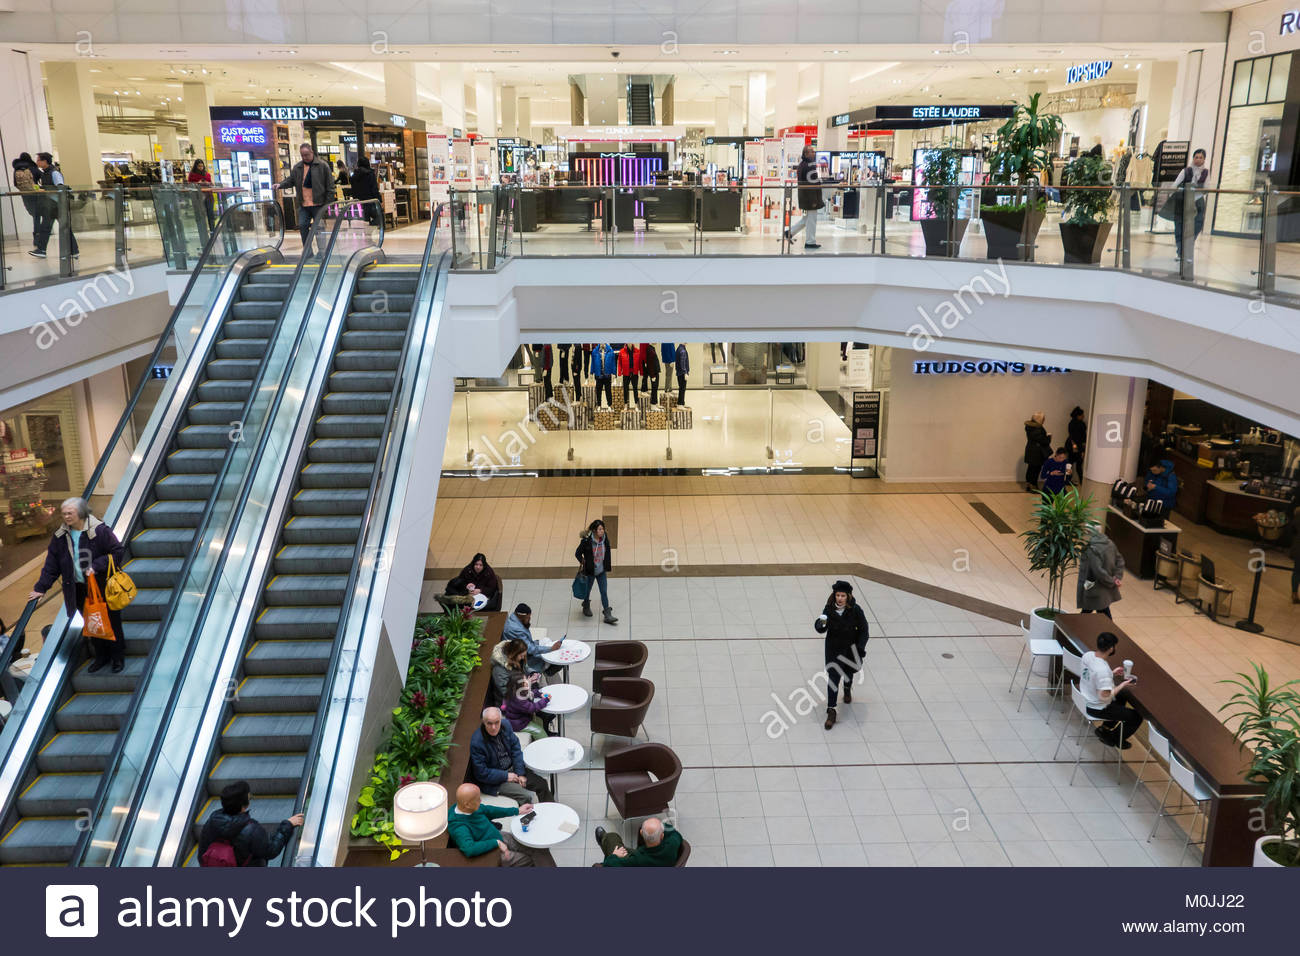 Hudson's Bay department store at the upscale Scarborough Town Centre mall Toronto Ontario Canada - Stock Image